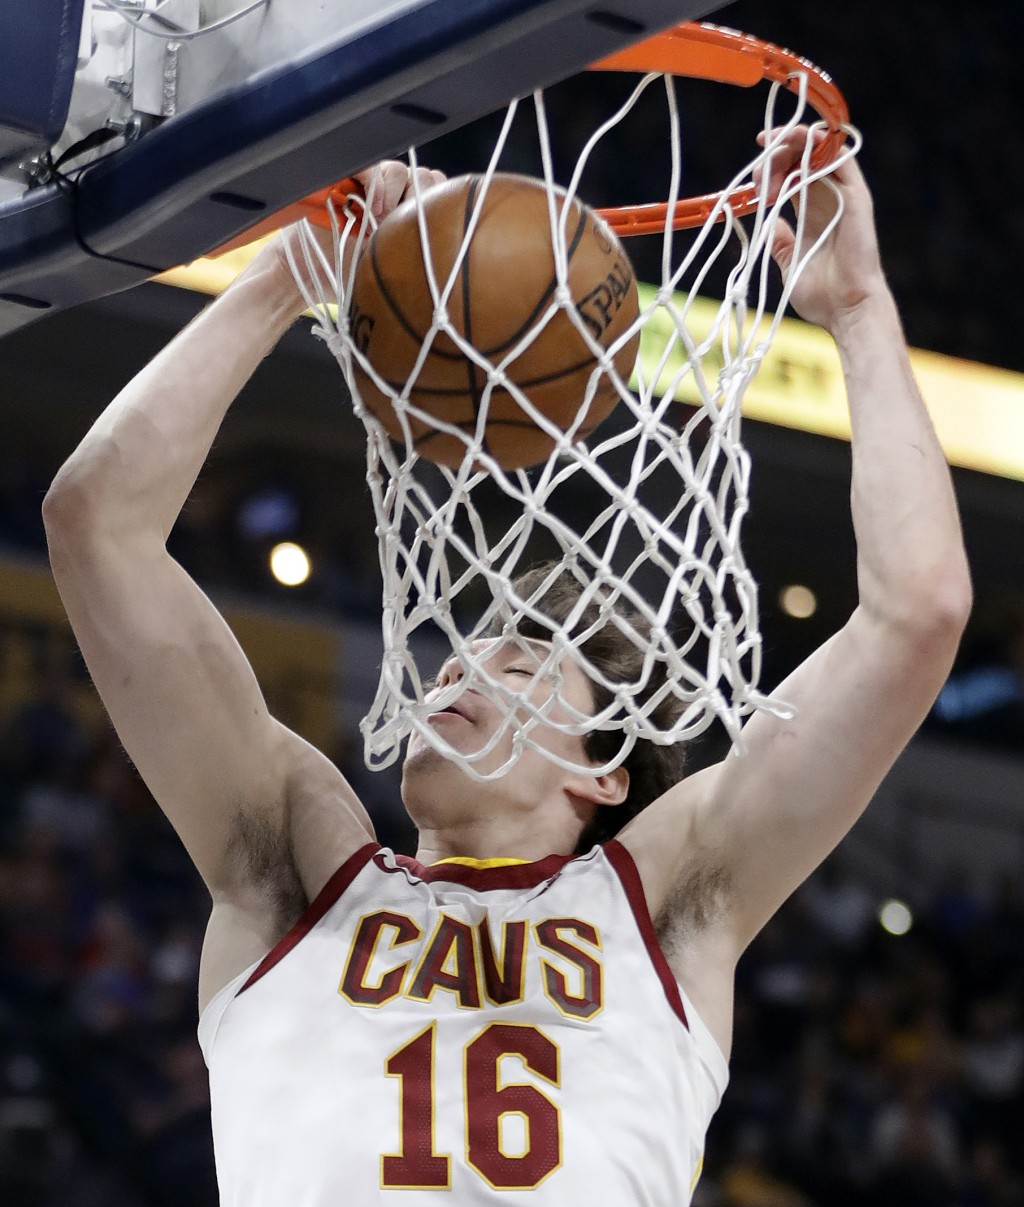 Cleveland Cavaliers' Cedi Osman dunks during the first half of an NBA basketball game against the Indiana Pacers, Friday, Jan. 12, 2018, in Indianapol